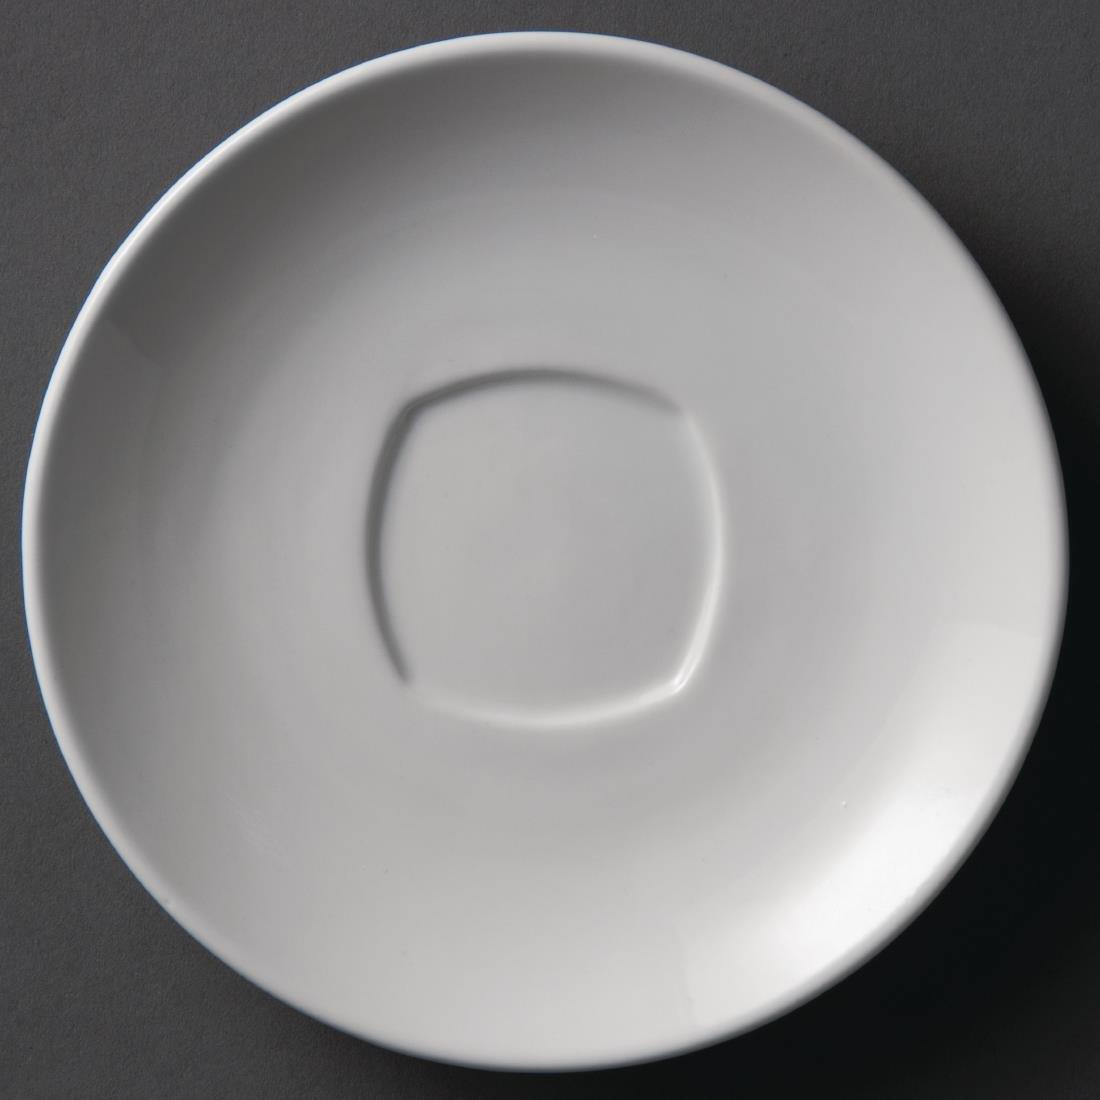 Y116 - Olympia Whiteware Rounded Square Saucer